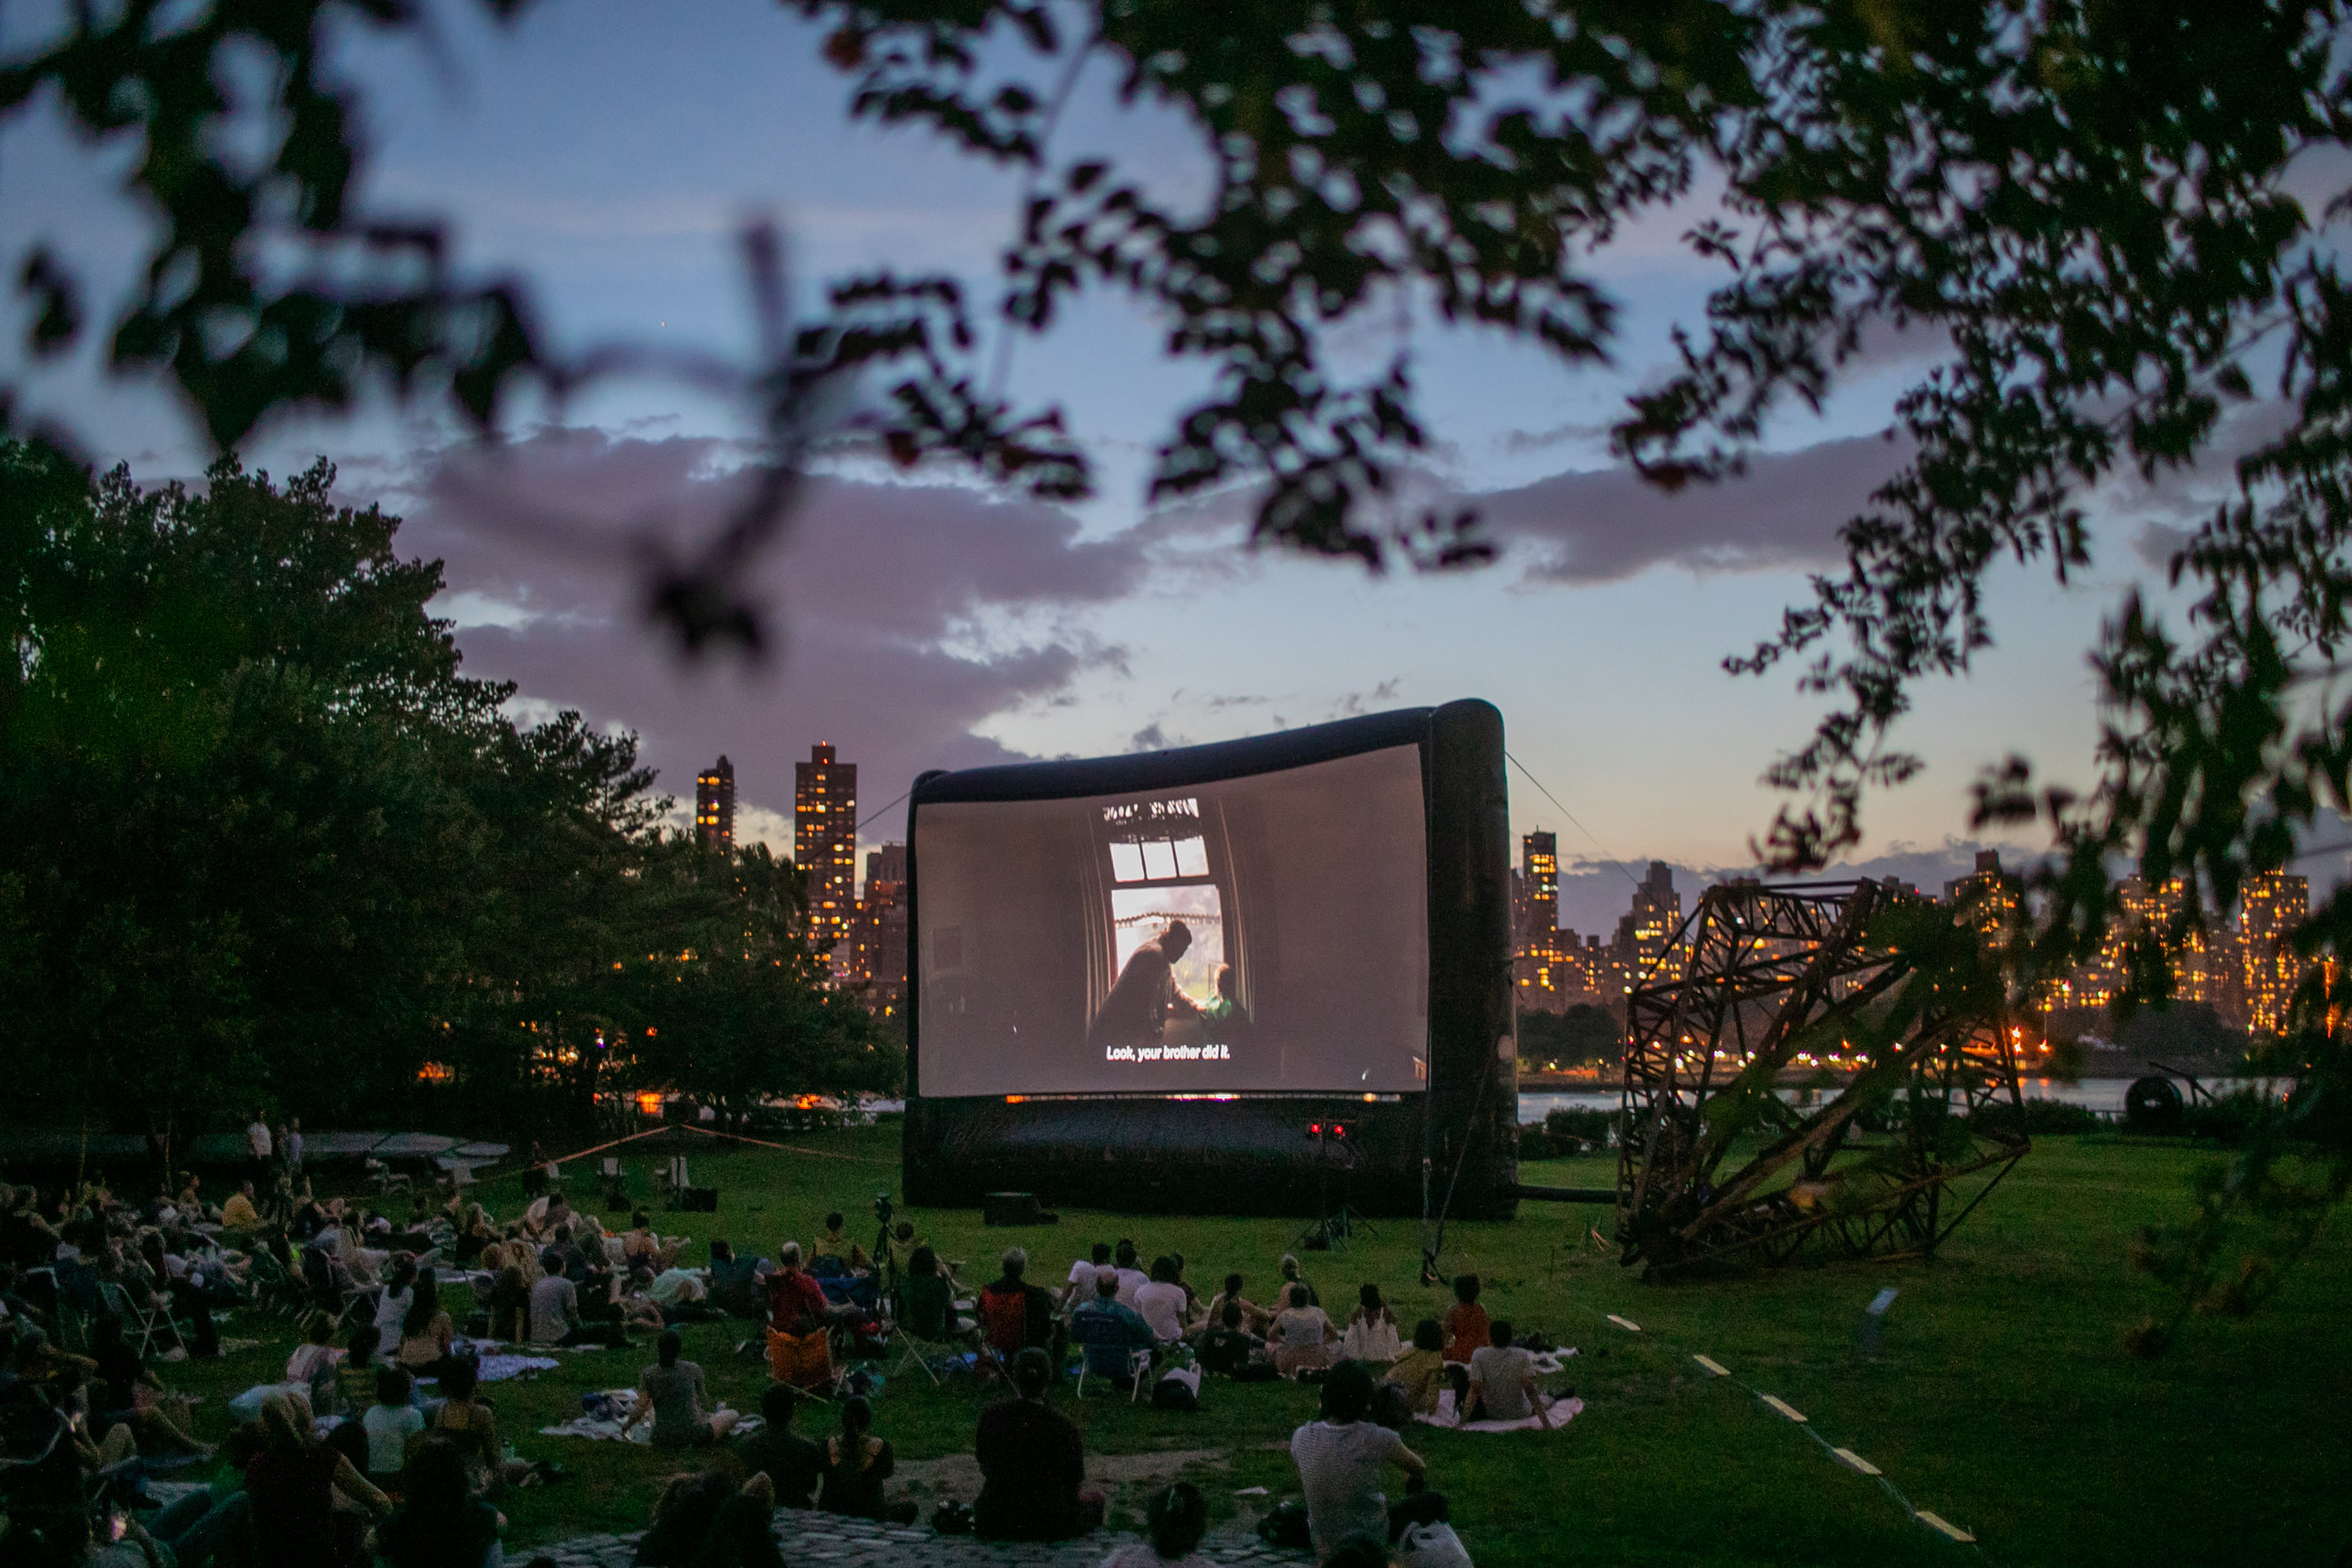 An outdoor film at Socrates Sculpture Garden in Astoria, Queens photographed for the Arts & Leisure section.